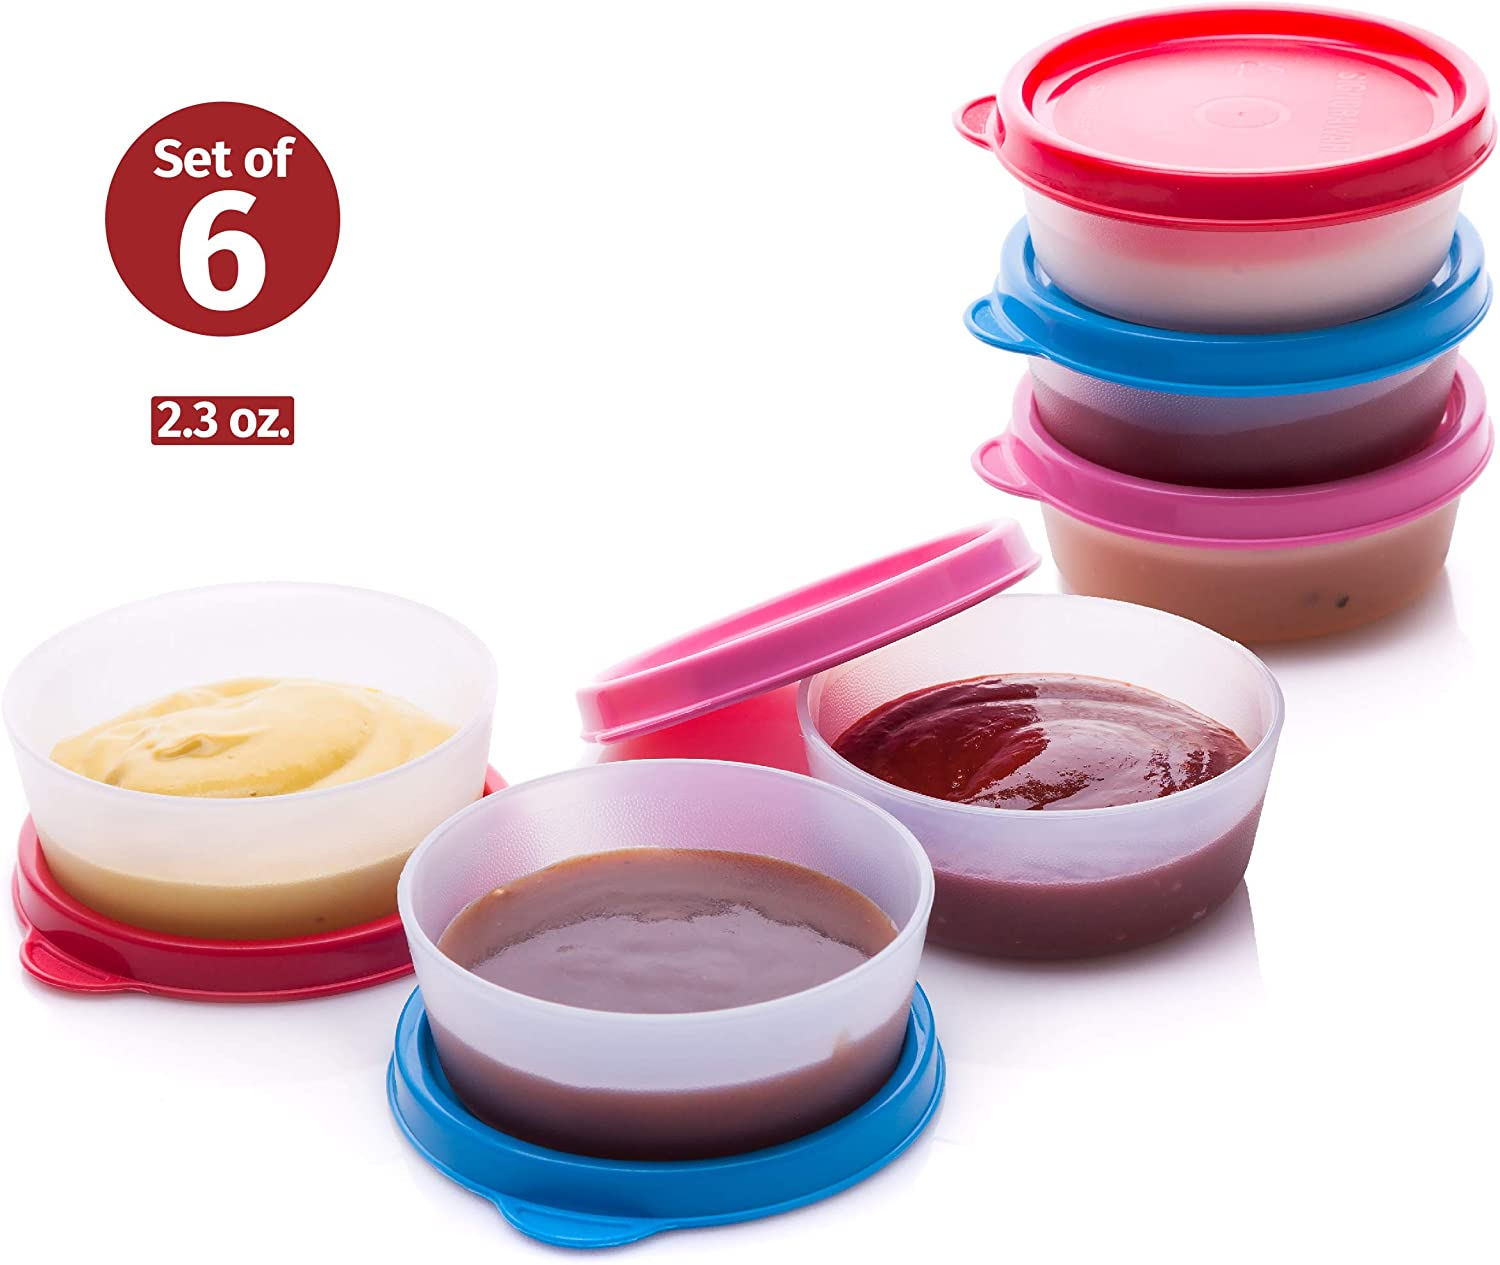 Condiment Cups Containers with Lid 6 pk. 2.3 oz. Salad Dressing Container to go Small Mini Food Storage Containers with Lids Sauce Cups Leak proof Reusable Plastic BPA free for Lunch Box Picnic Travel